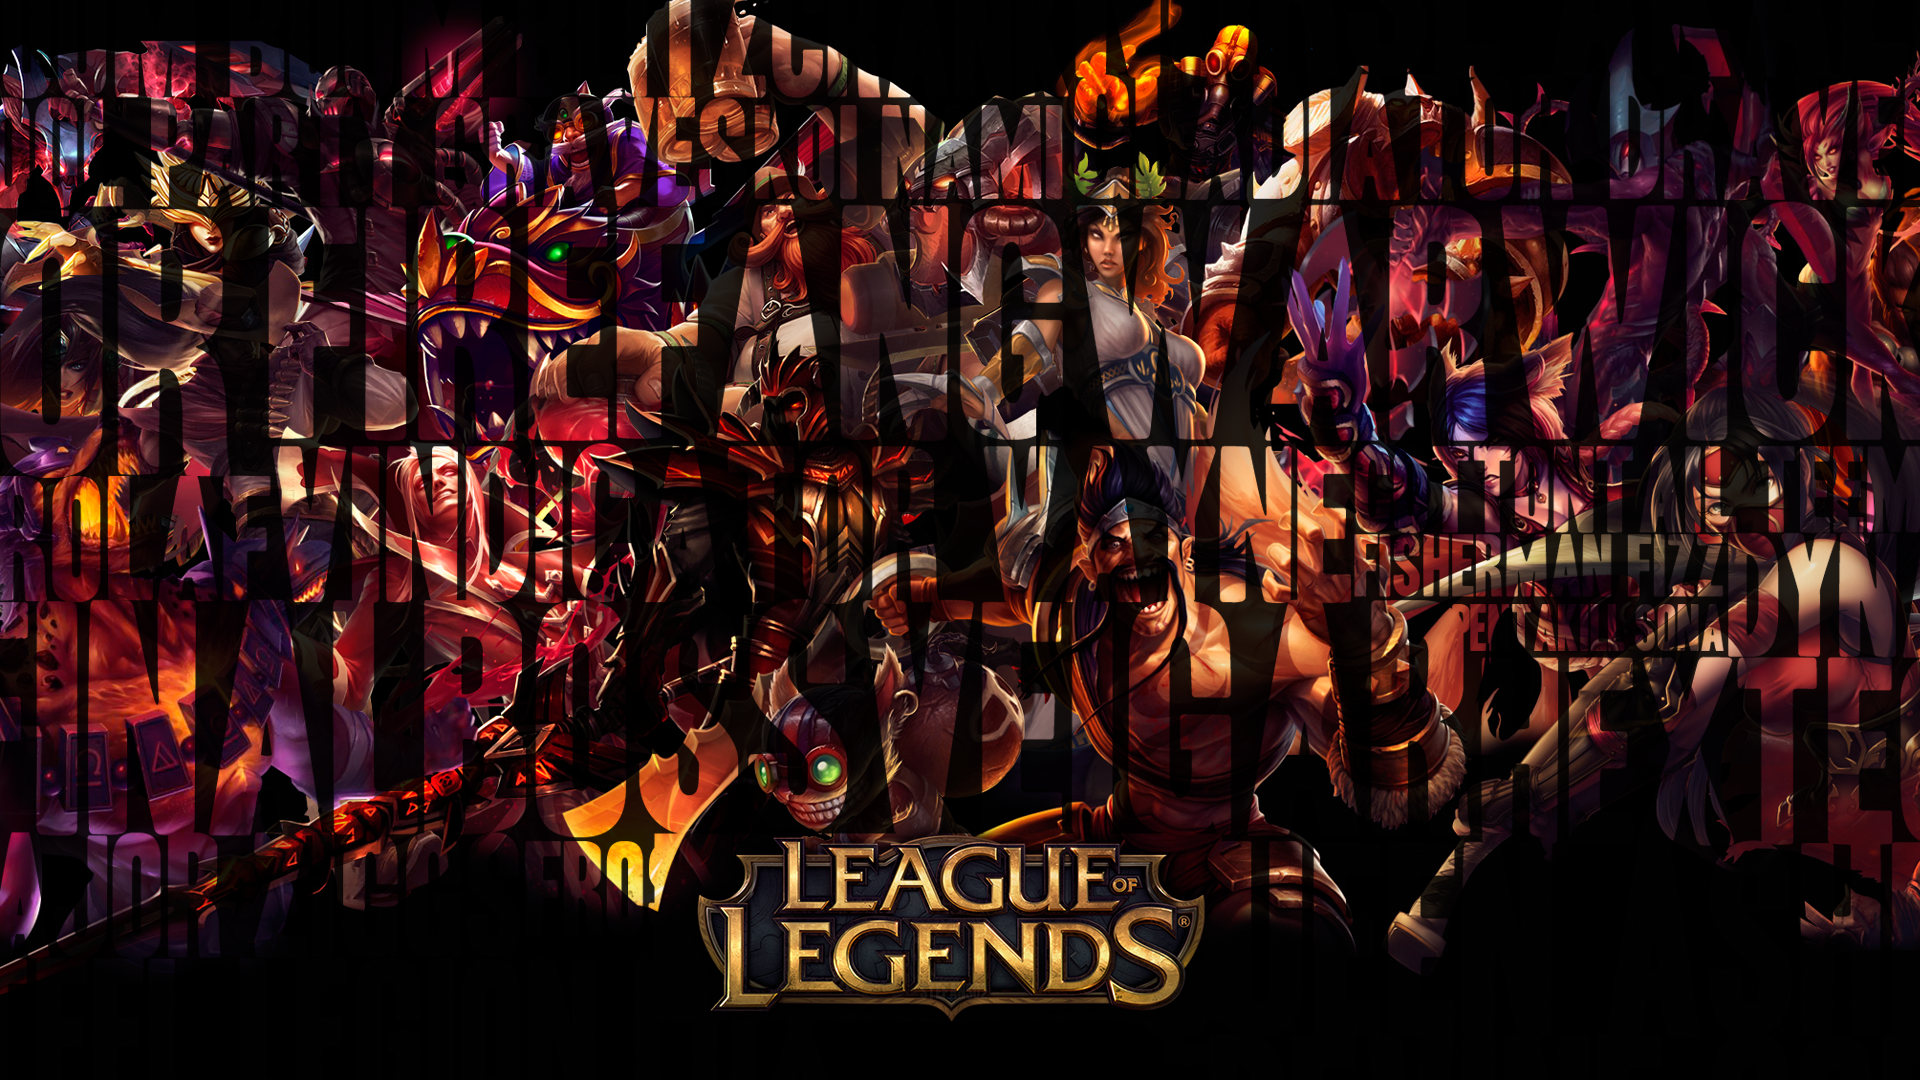 Download League of Legends Online Game HD Wallpaper. Search more high ...